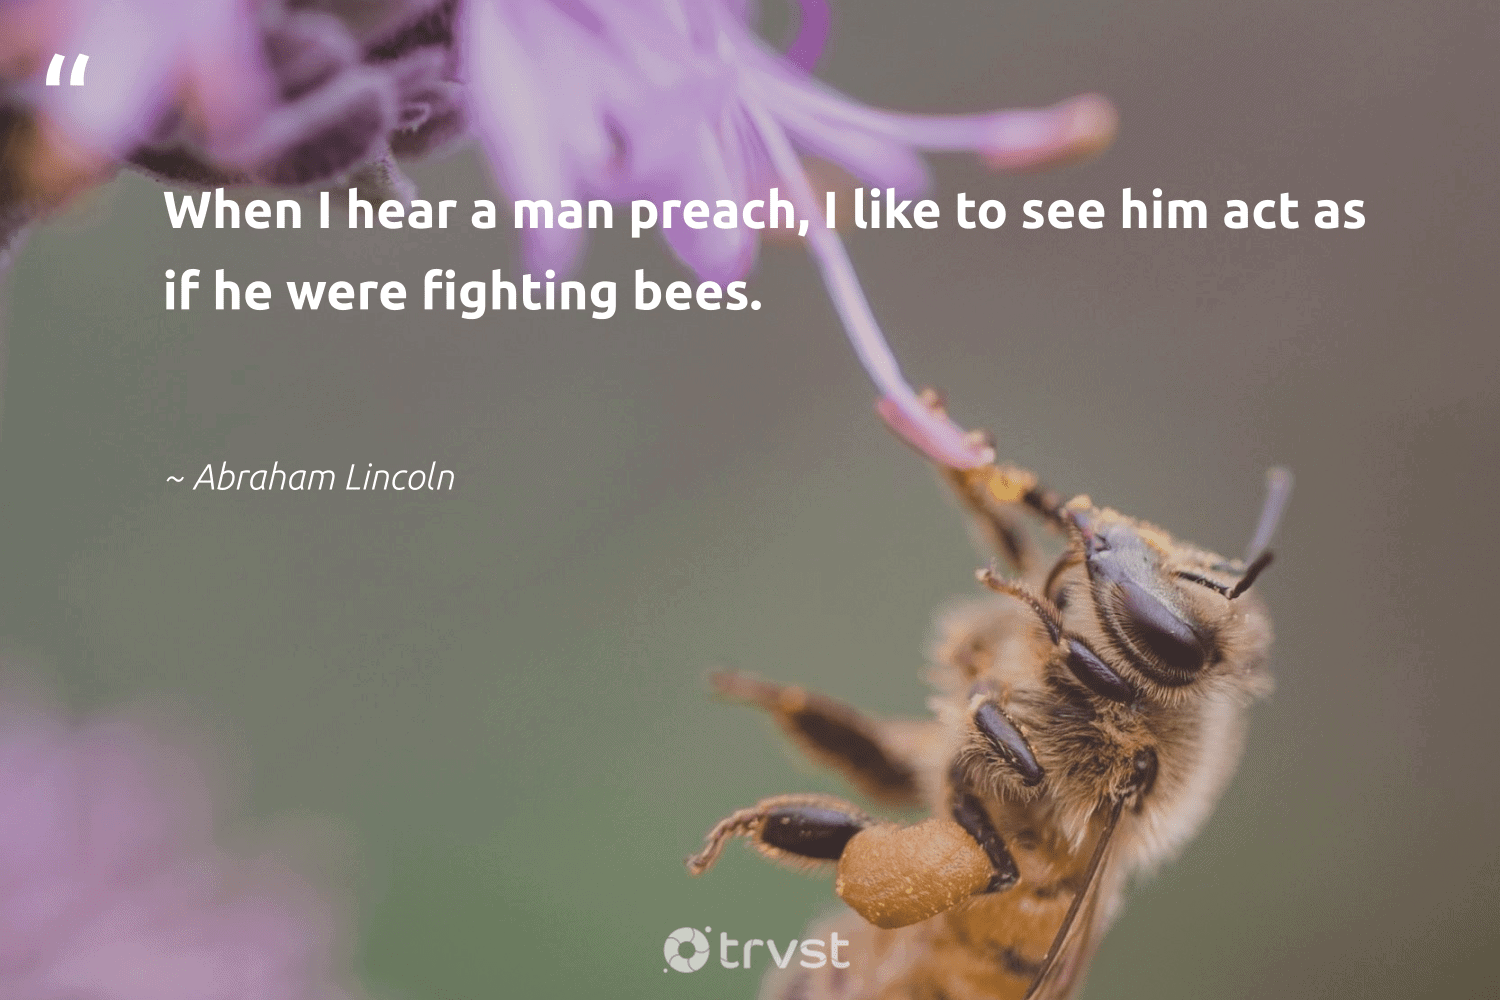 """""""When I hear a man preach, I like to see him act as if he were fighting bees.""""  - Abraham Lincoln #trvst #quotes #bees #savethebees #pollinators #biology #gogreen #beekeeping #insects #geology #collectiveaction #beeswax"""